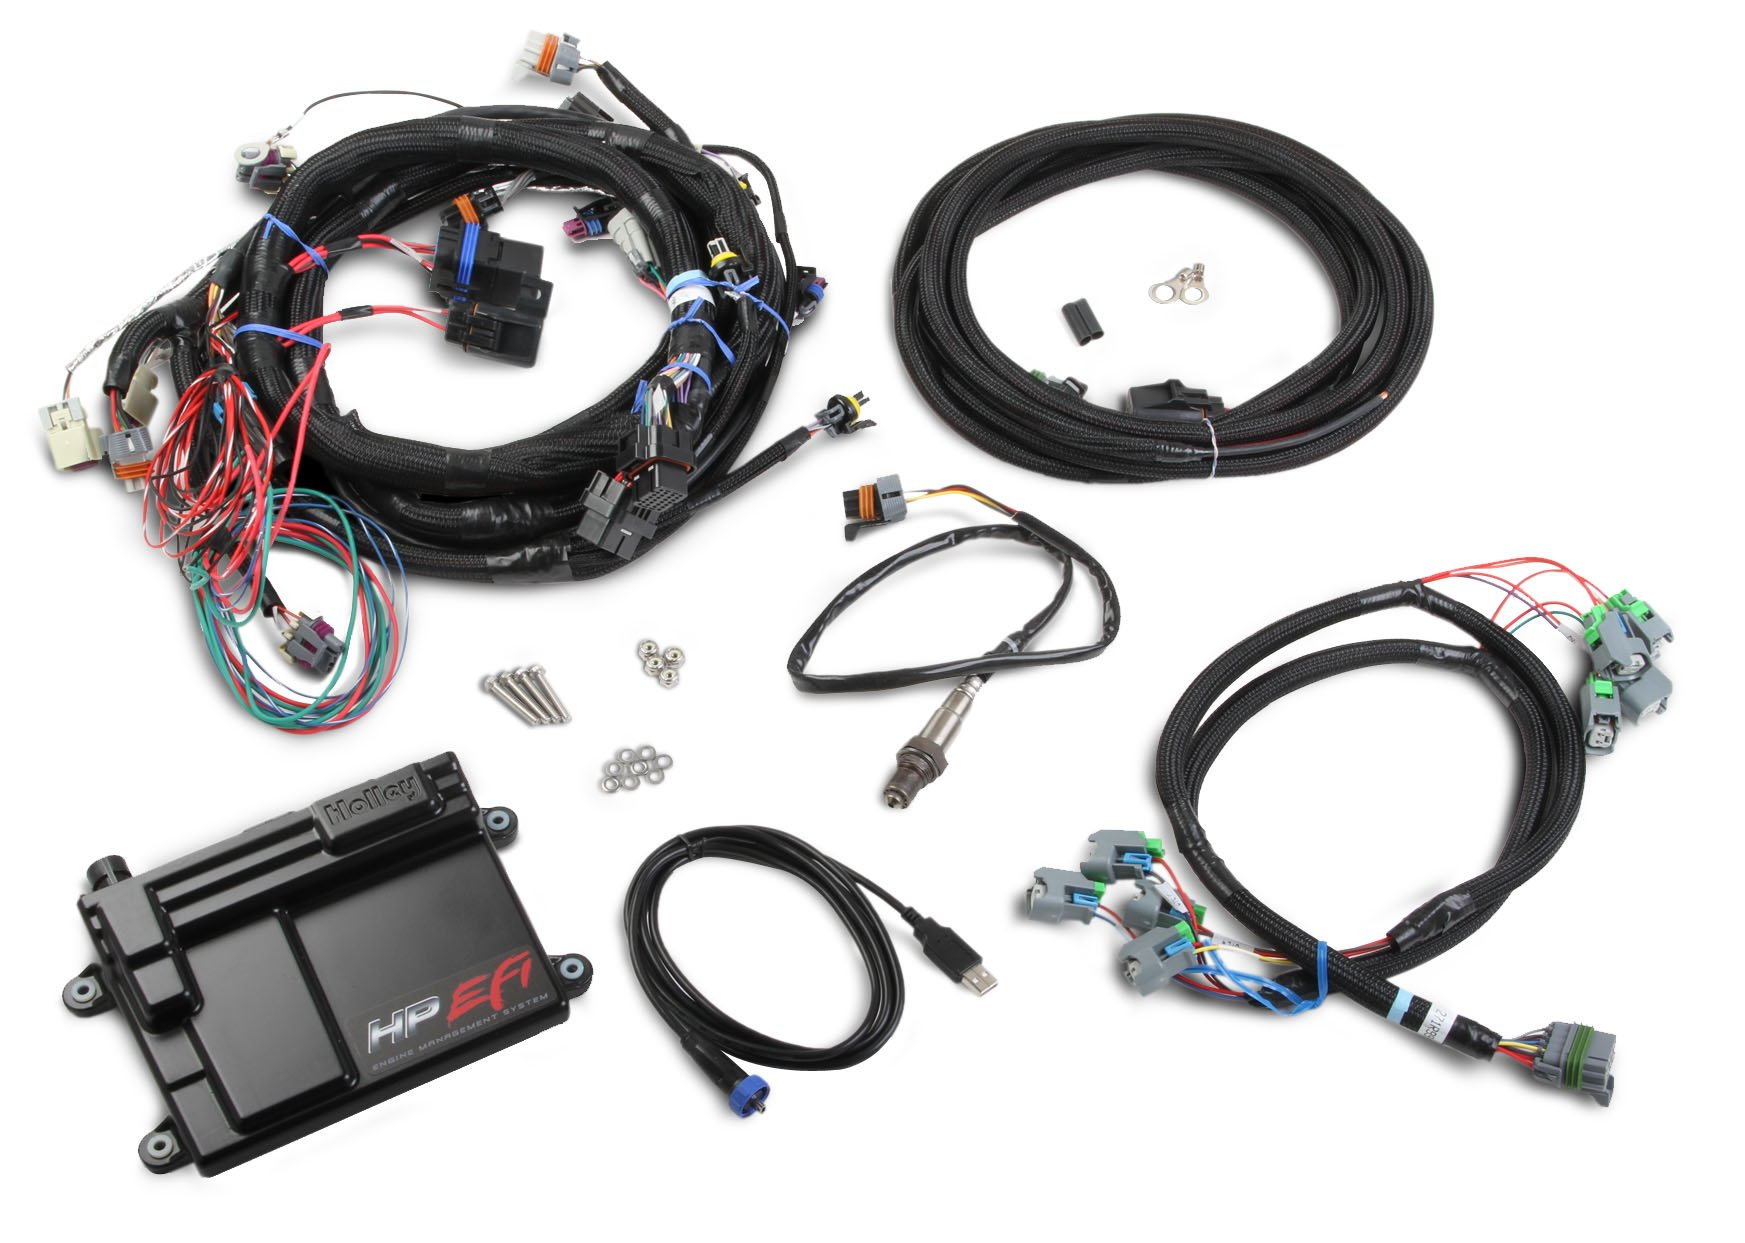 holley efi 550 603 hp efi ecu harness kits rh holley com LS3 Crate Engine LS3 Engine Covers